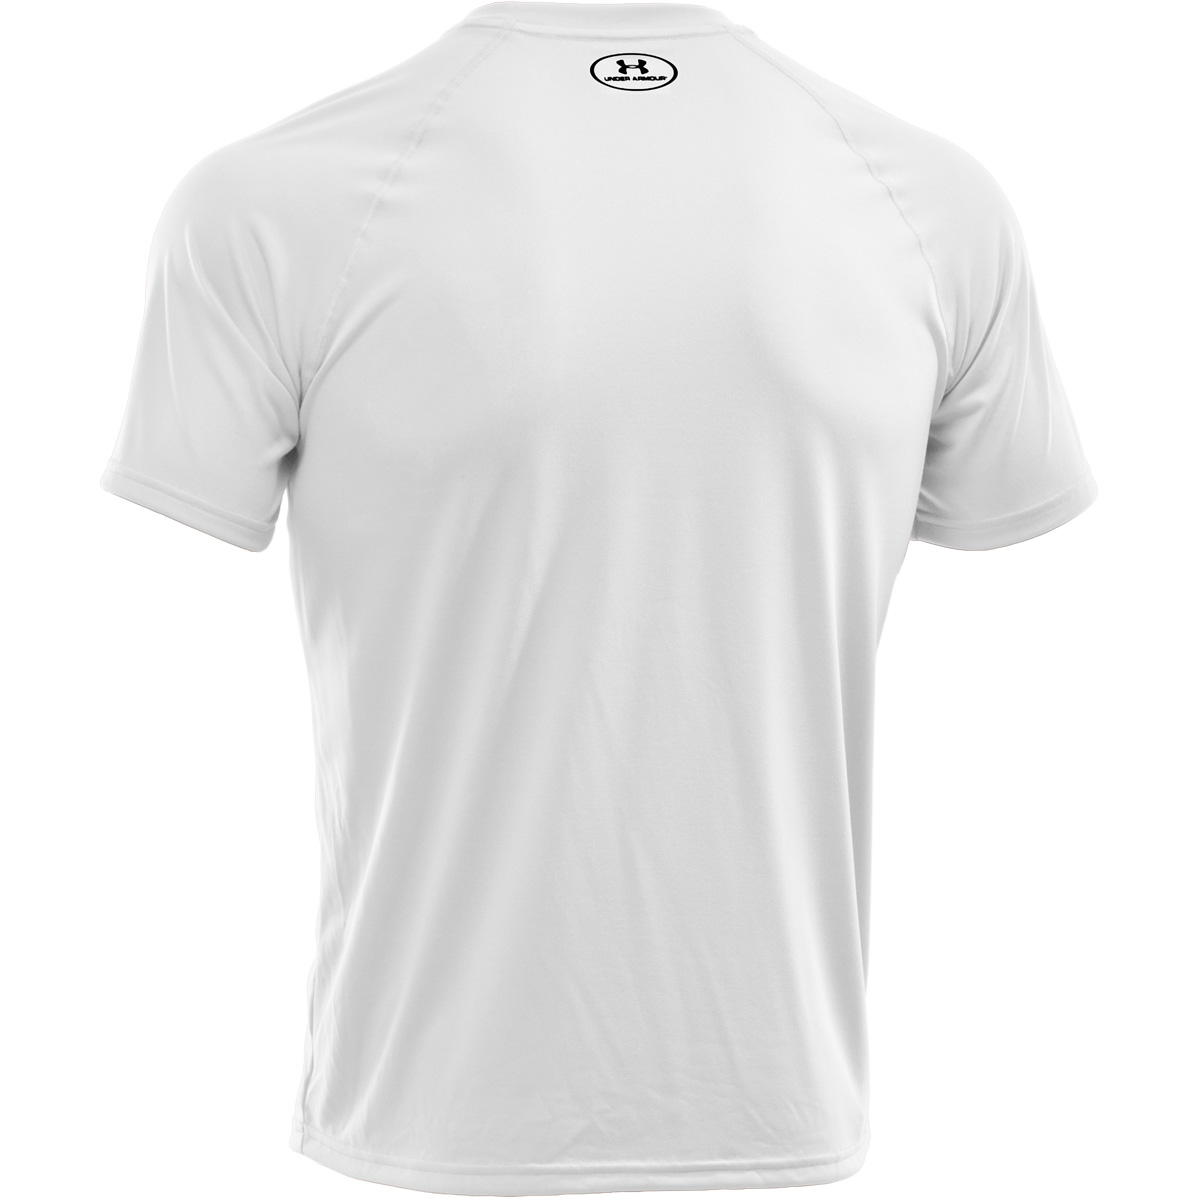 Under-Armour-Mens-UA-Tech-SS-T-Shirt-HeatGear-Training-31-OFF-RRP thumbnail 107